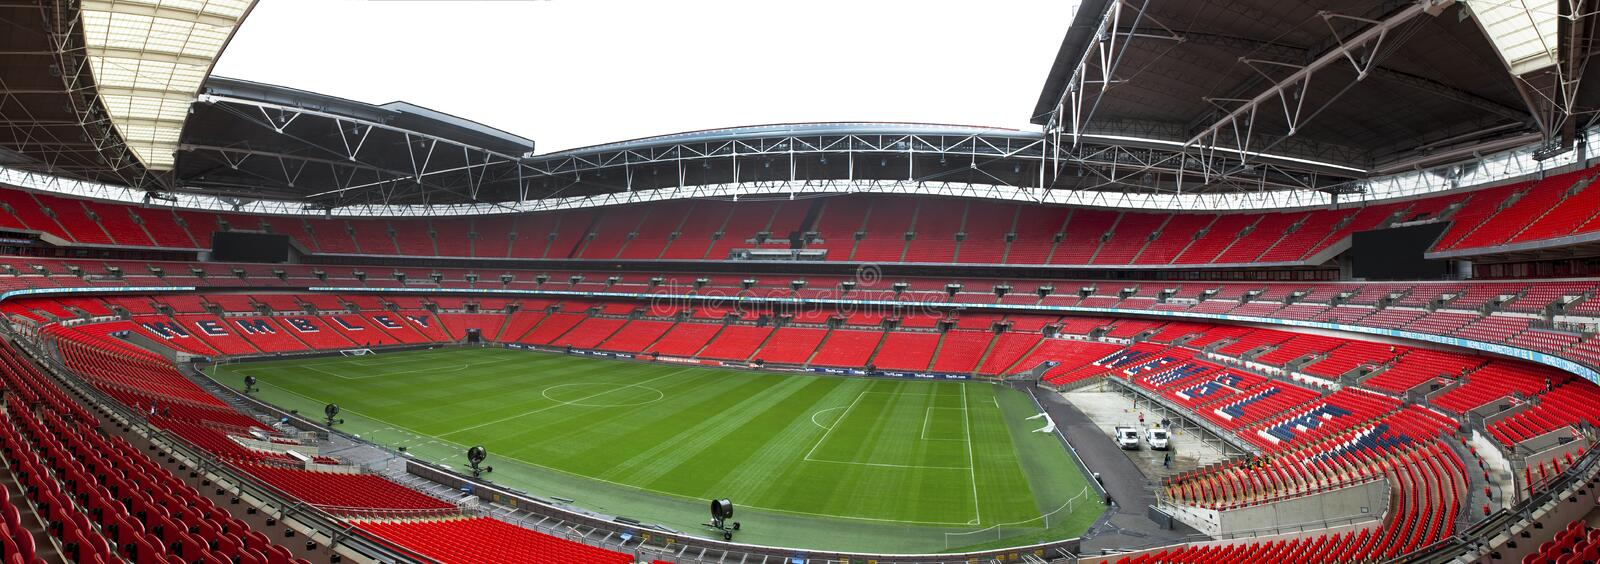 Wembley panorama royaltyfria bilder